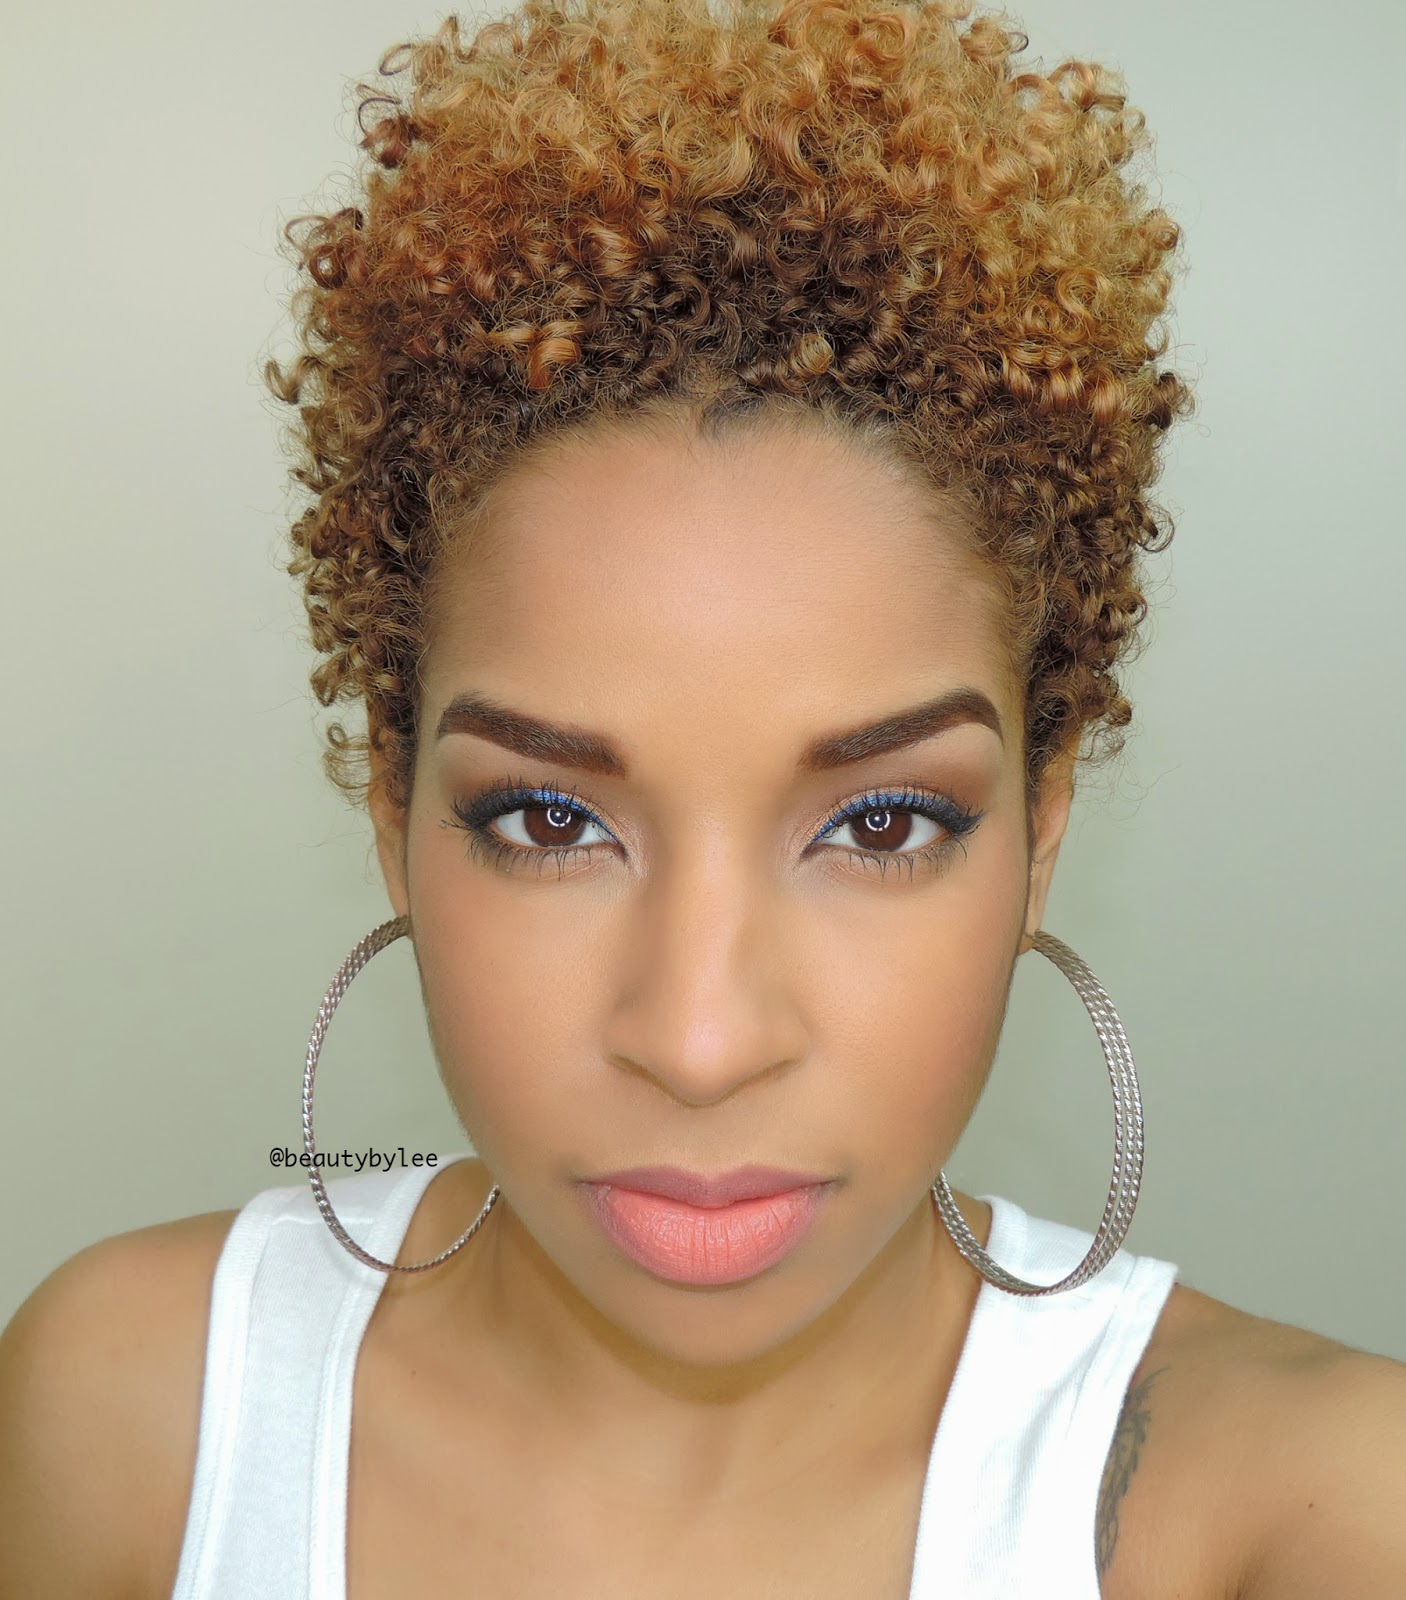 Hairstyles For Woman: 70 Best Short Hairstyles For Black Women With Thin Hair